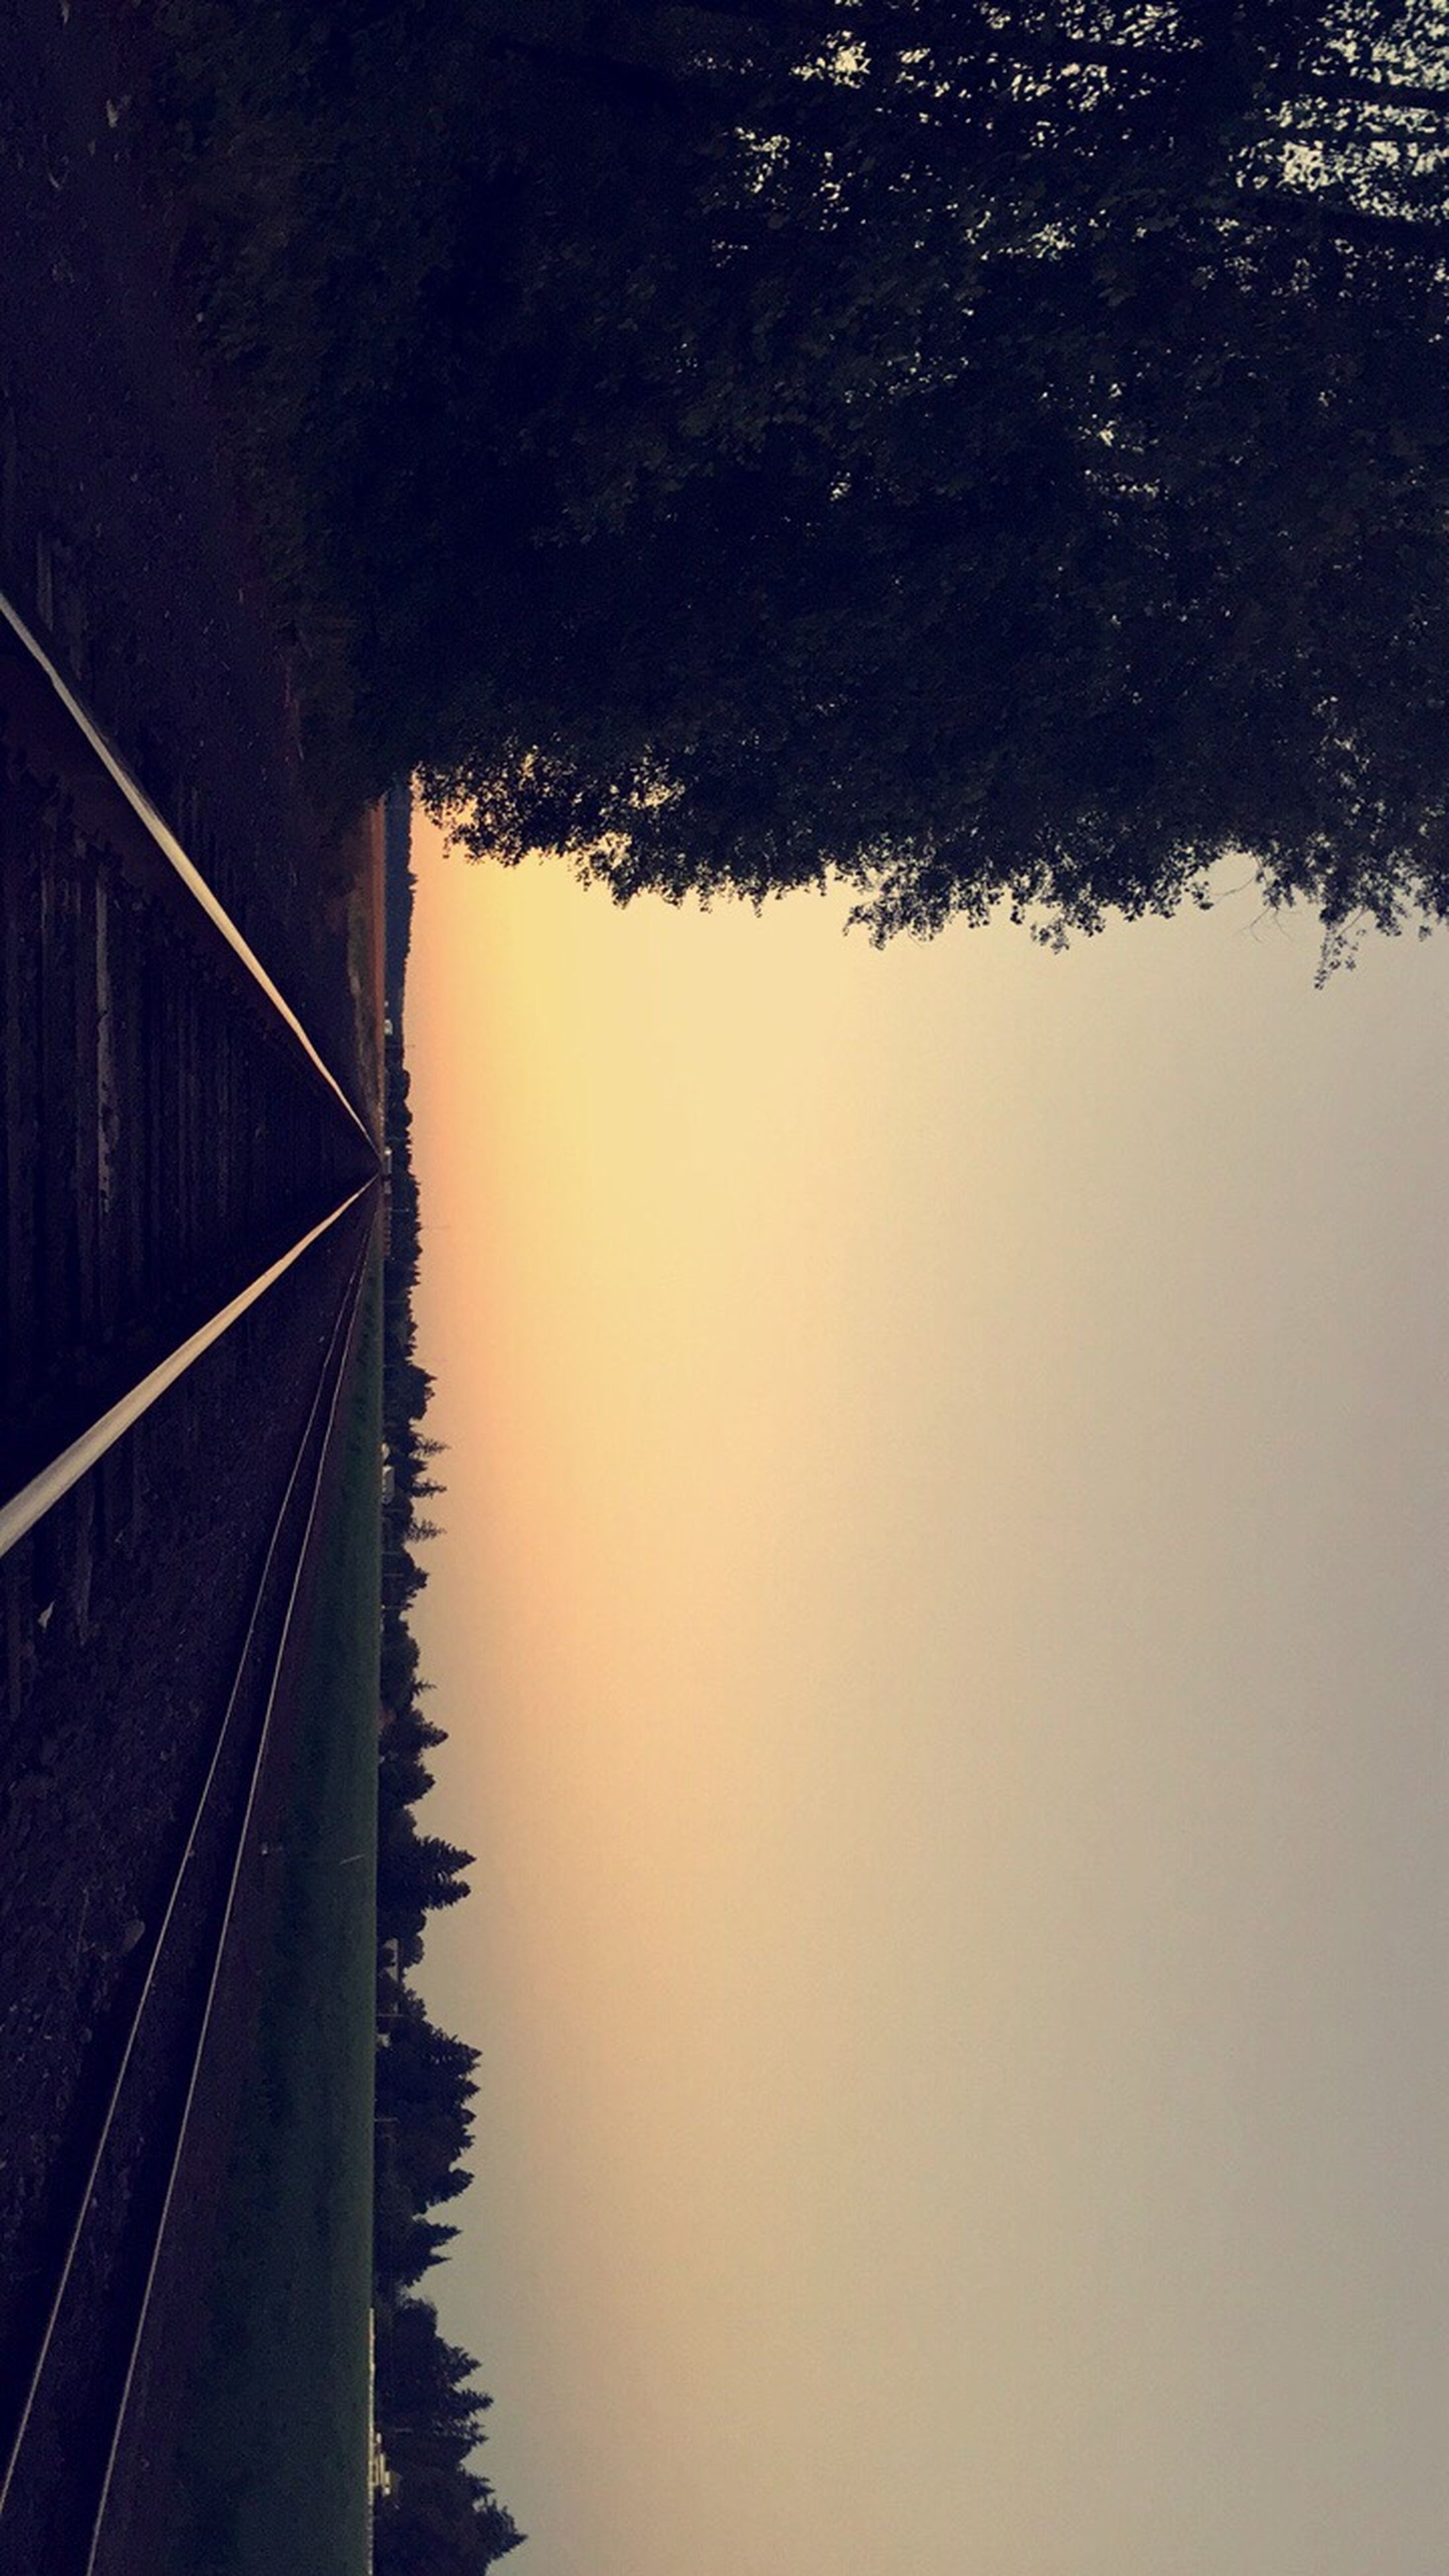 tree, nature, rail transportation, railroad track, transportation, no people, outdoors, water, tranquil scene, river, day, growth, tranquility, beauty in nature, scenics, sky, landscape, sunset, clear sky